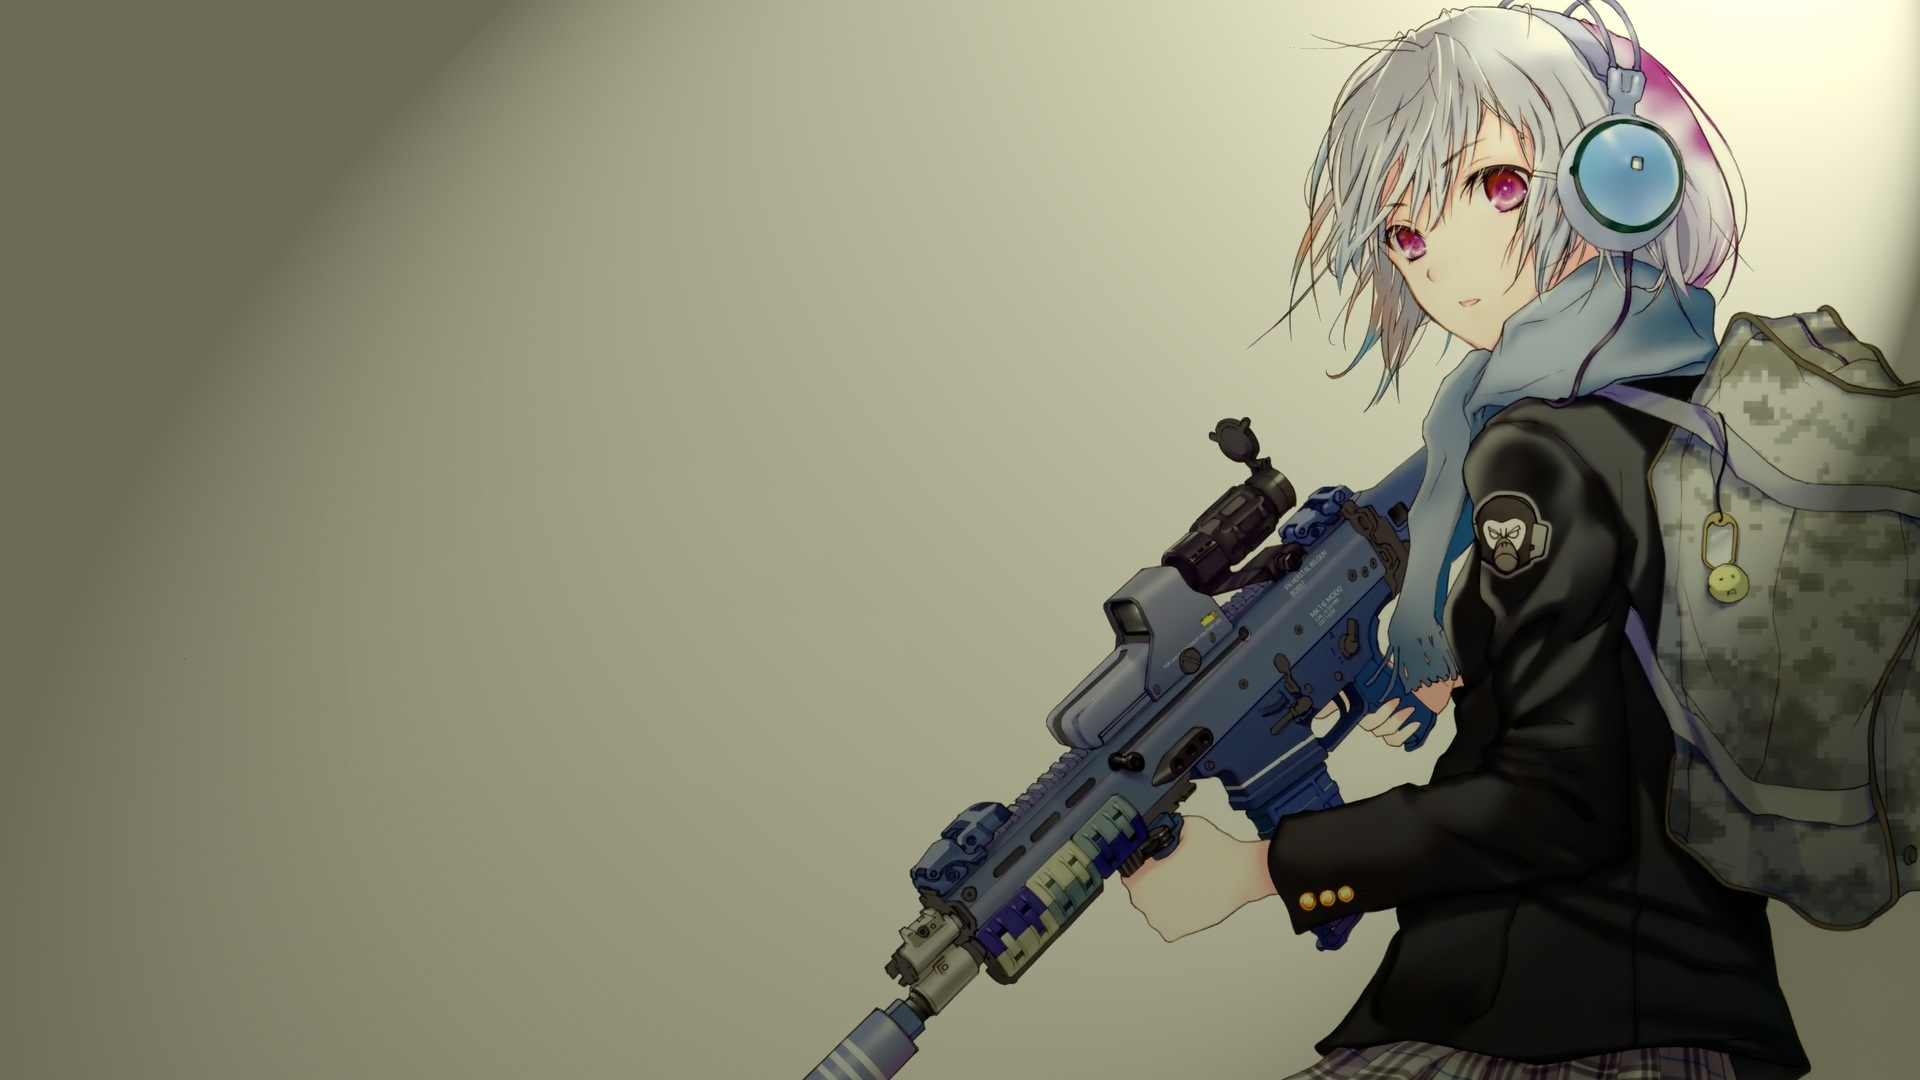 Collection of Anime Girls With Guns Wallpaper on HDWallpapers